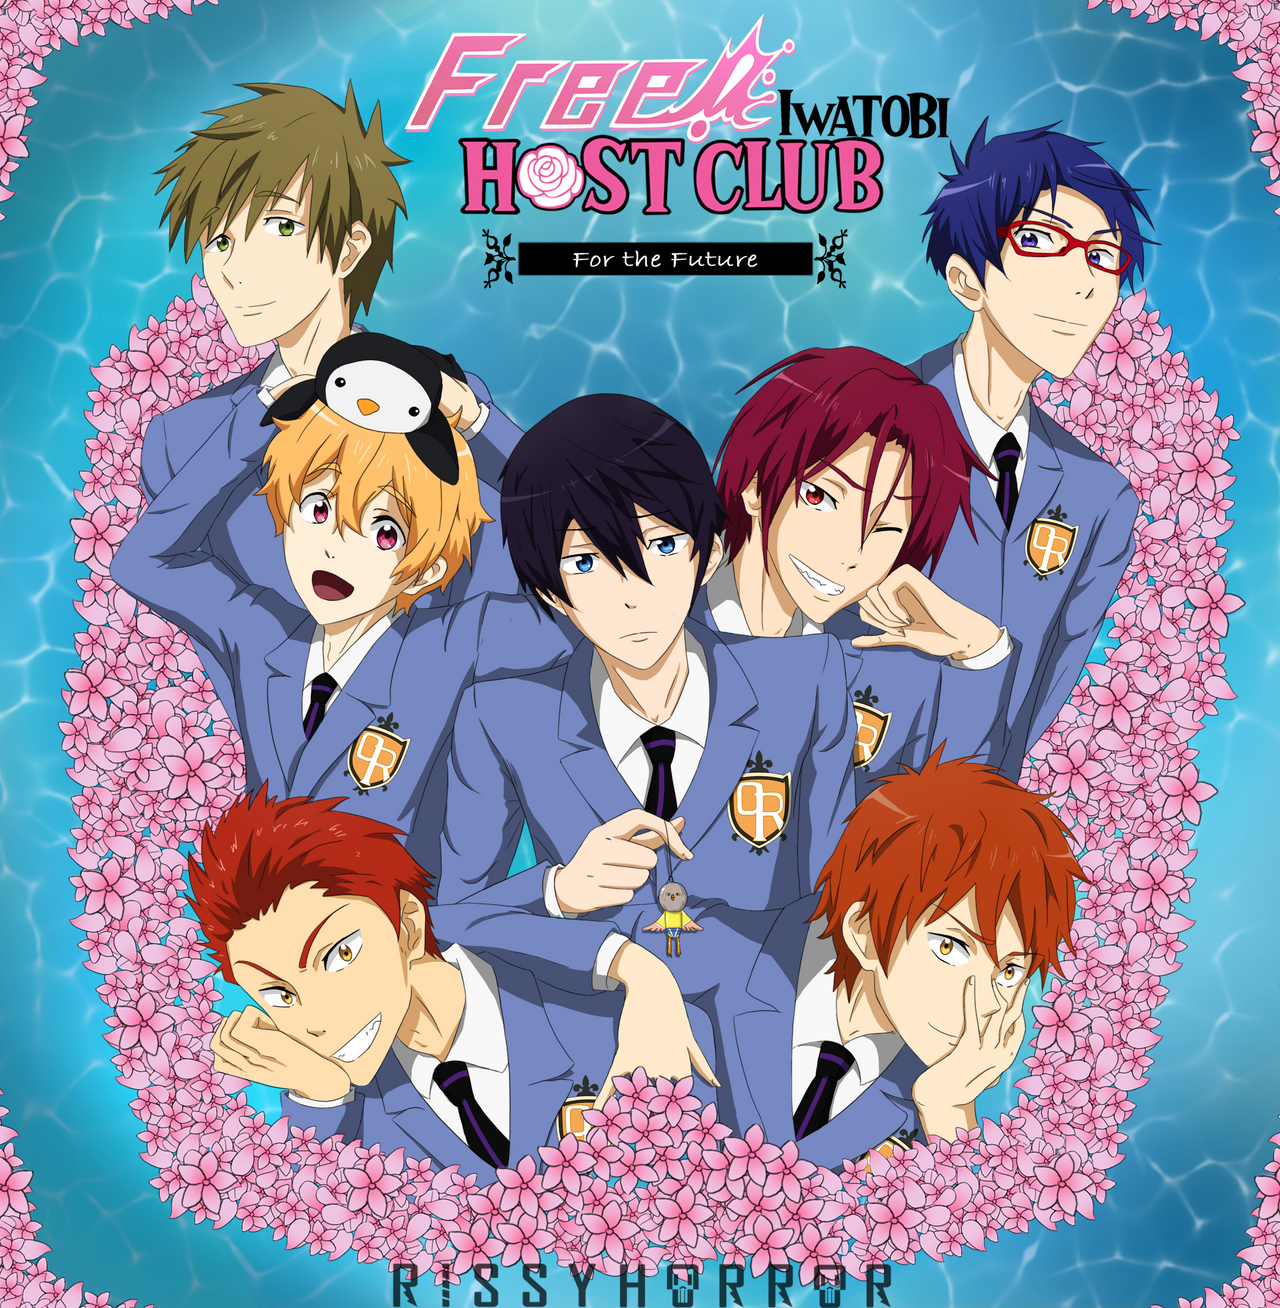 High School Manga Slots - Play for Free Instantly Online